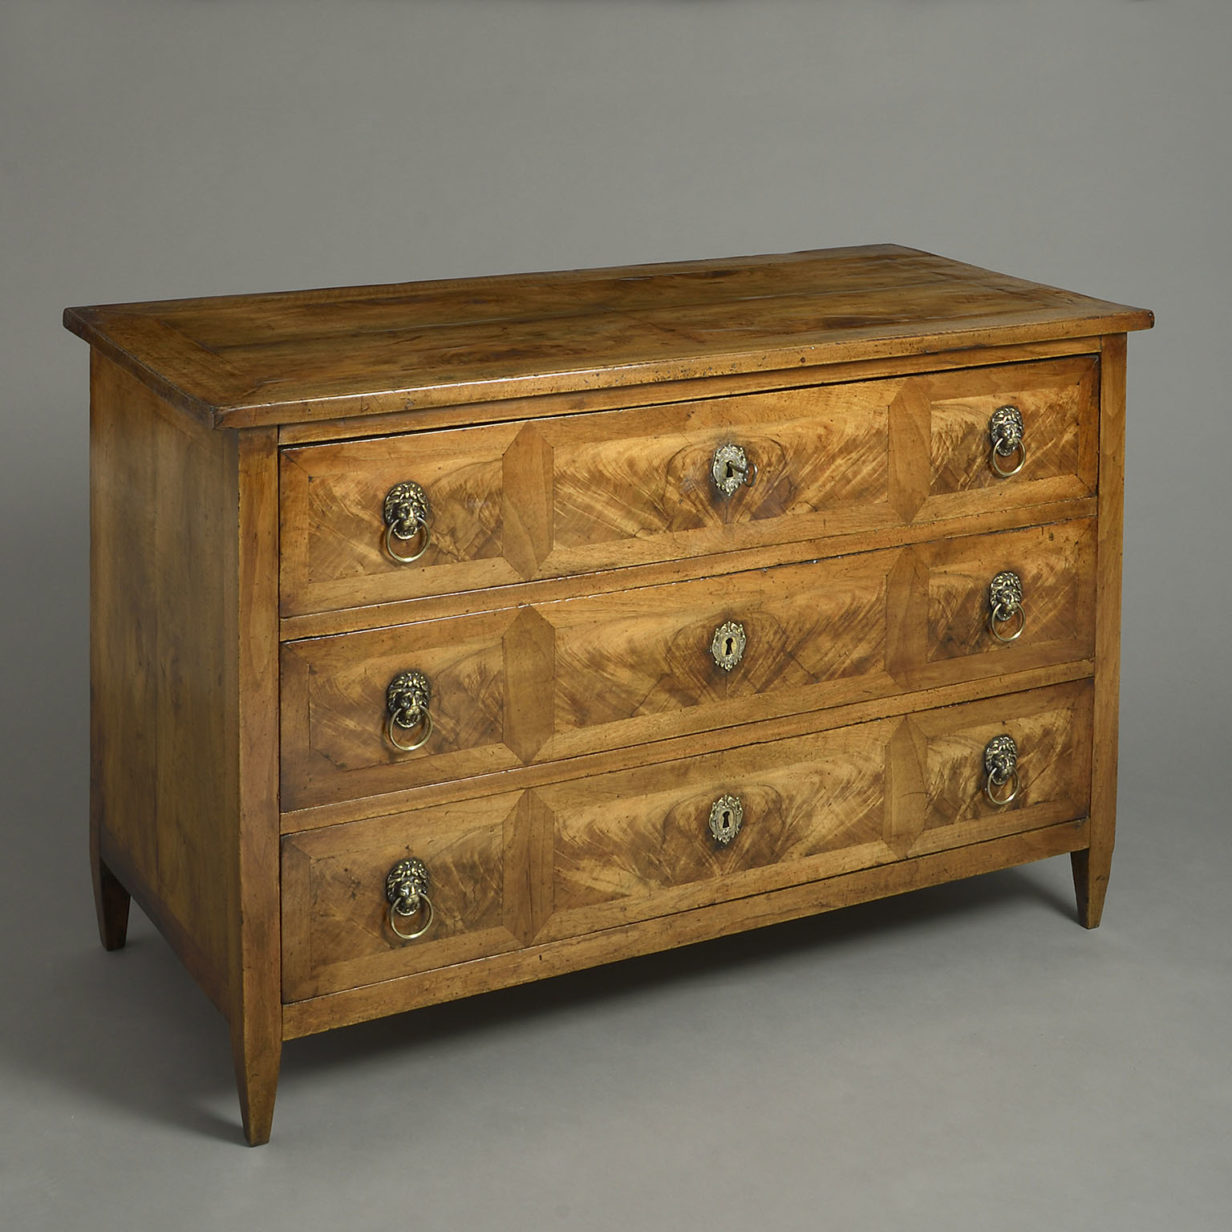 North Italian Commode circa 1790